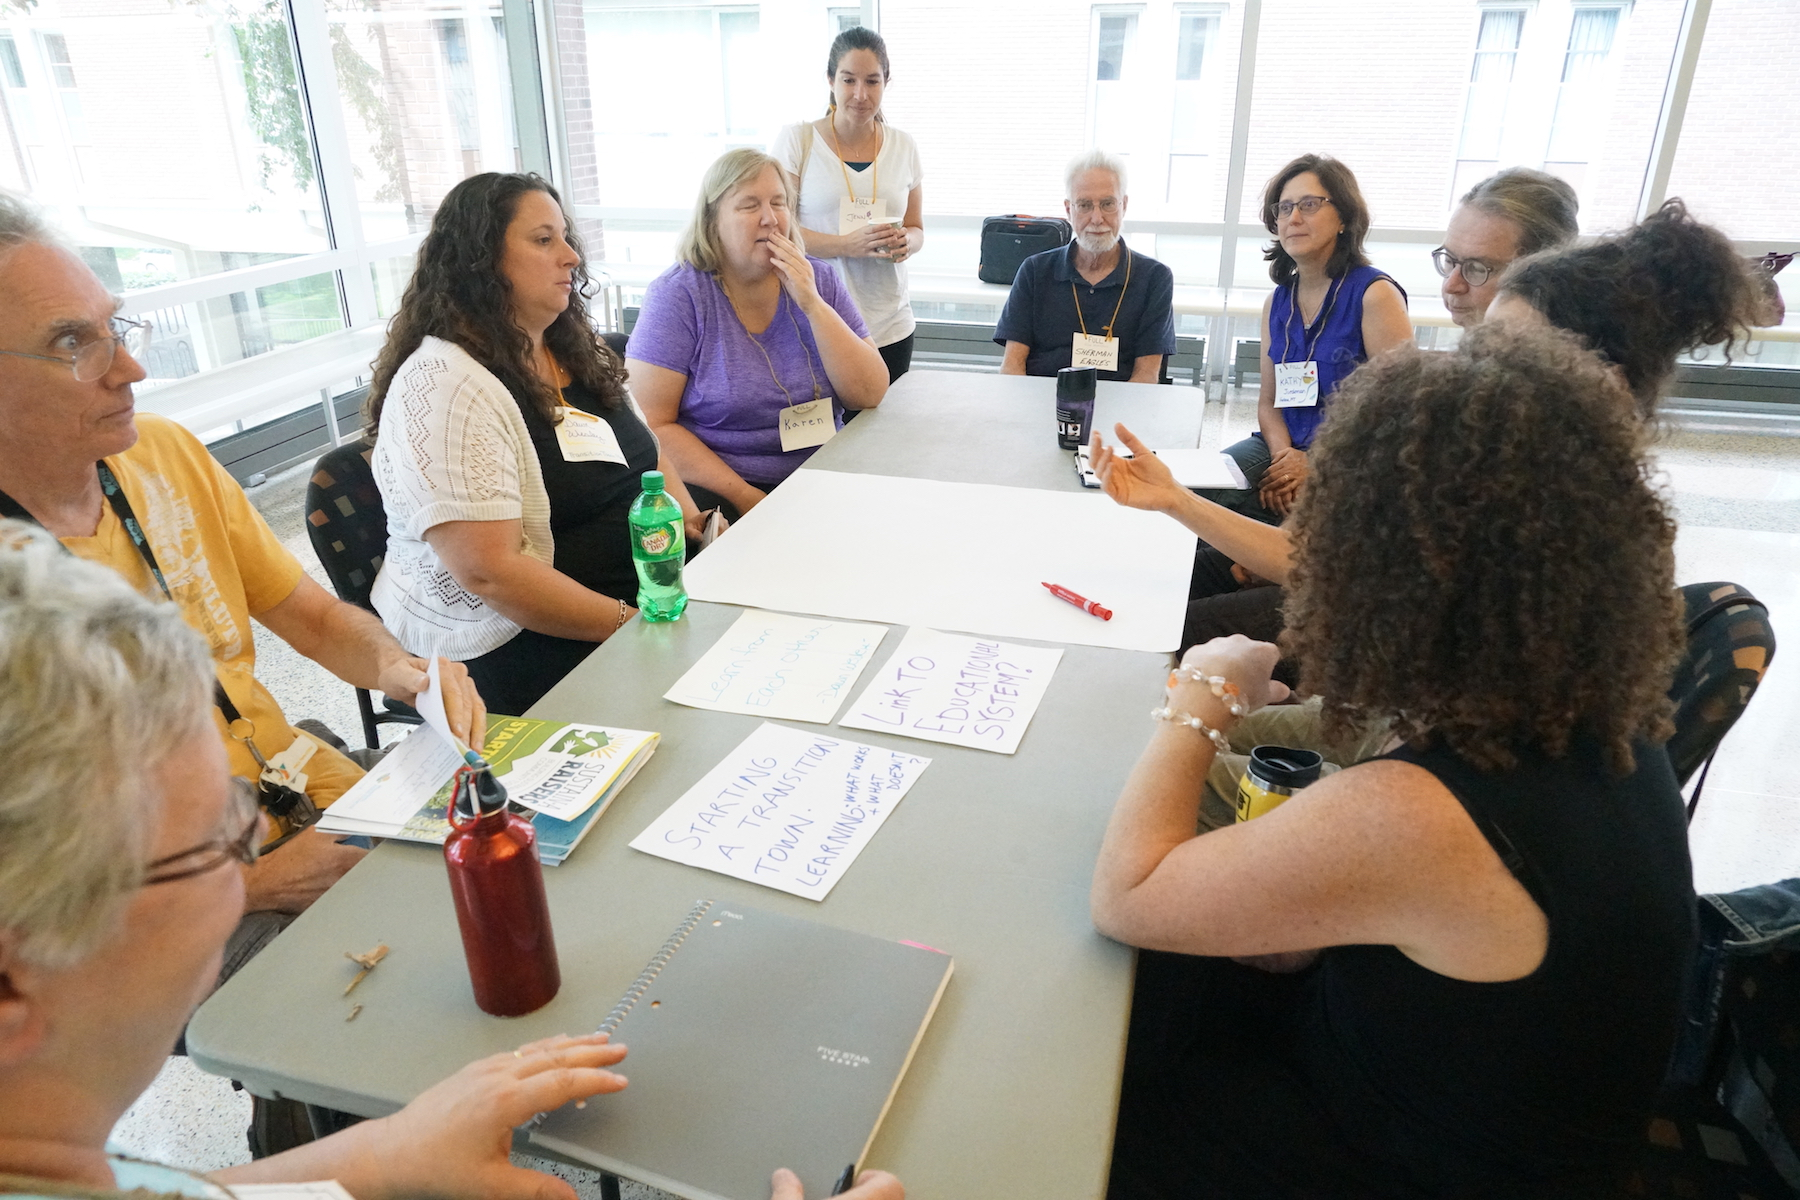 Sari Steuber, Sherman Eagles, Dawn Wesley, Kathy Juedeman, and others bring together three interrelated topics about education at their Open Space table. Photo by Teresa Konechne.